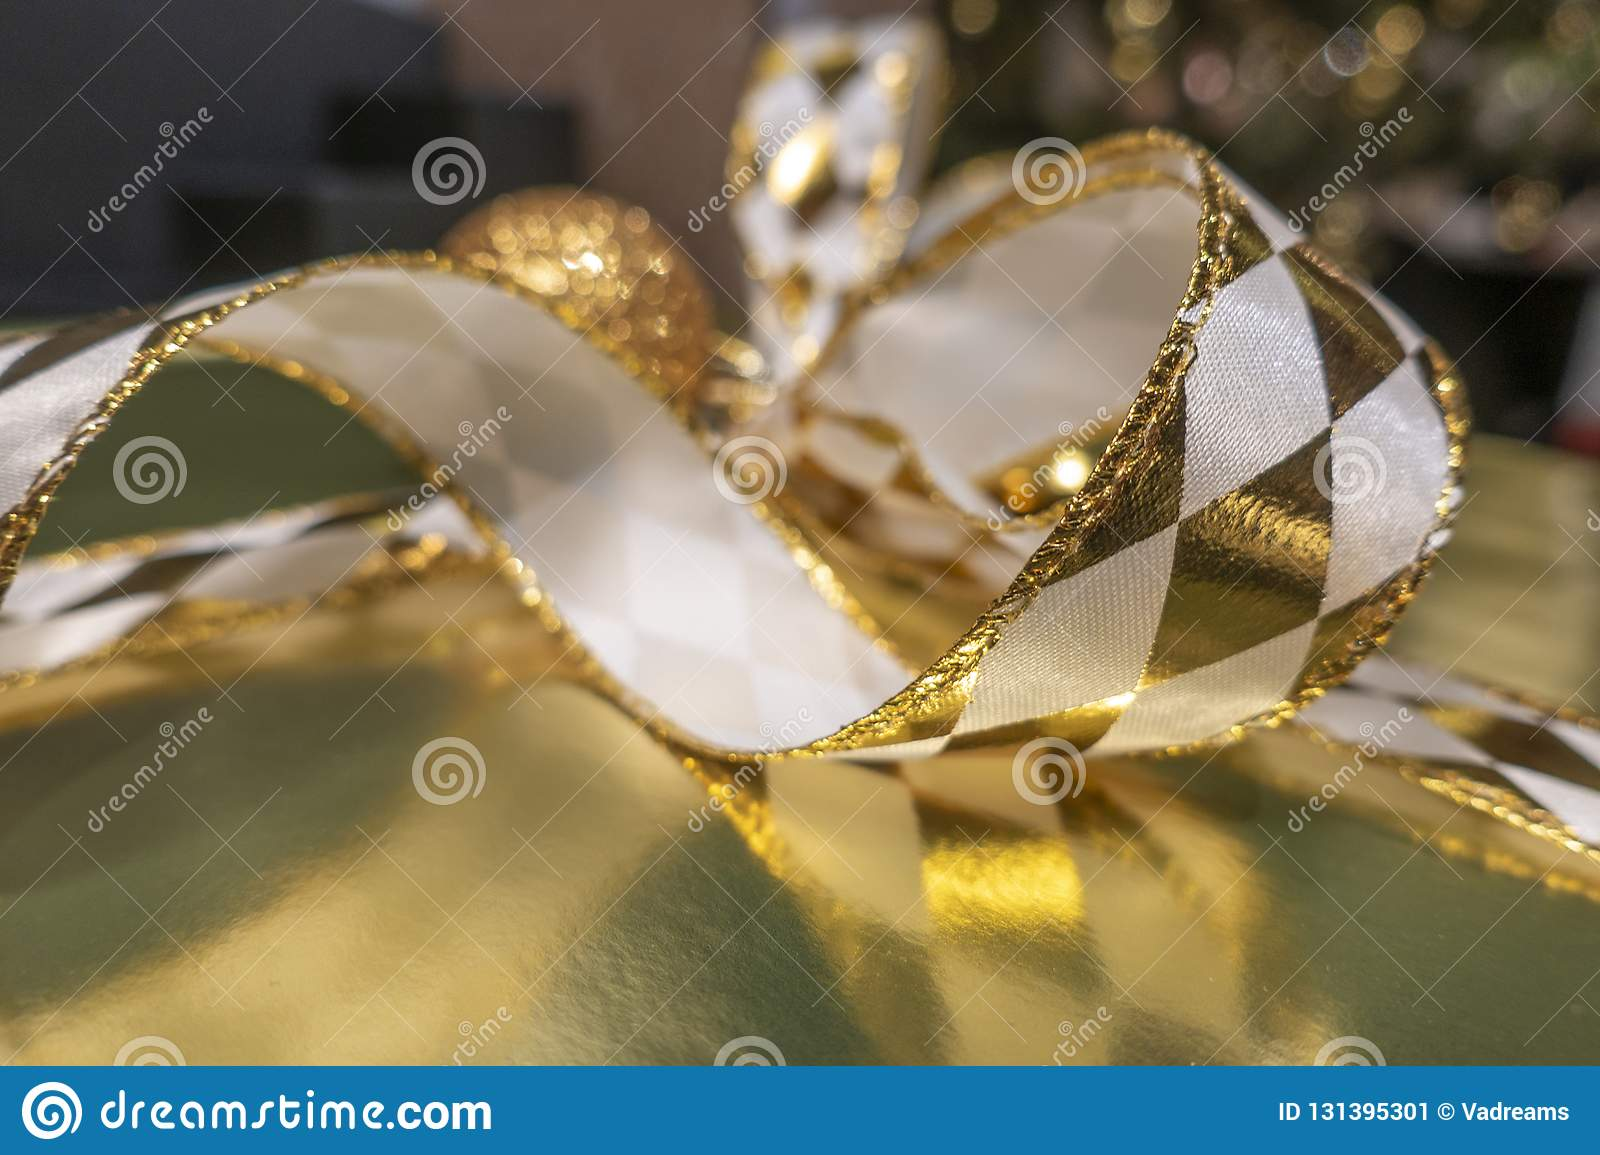 Abstract image christmas gift with shiny gold ribbons and bokeh background